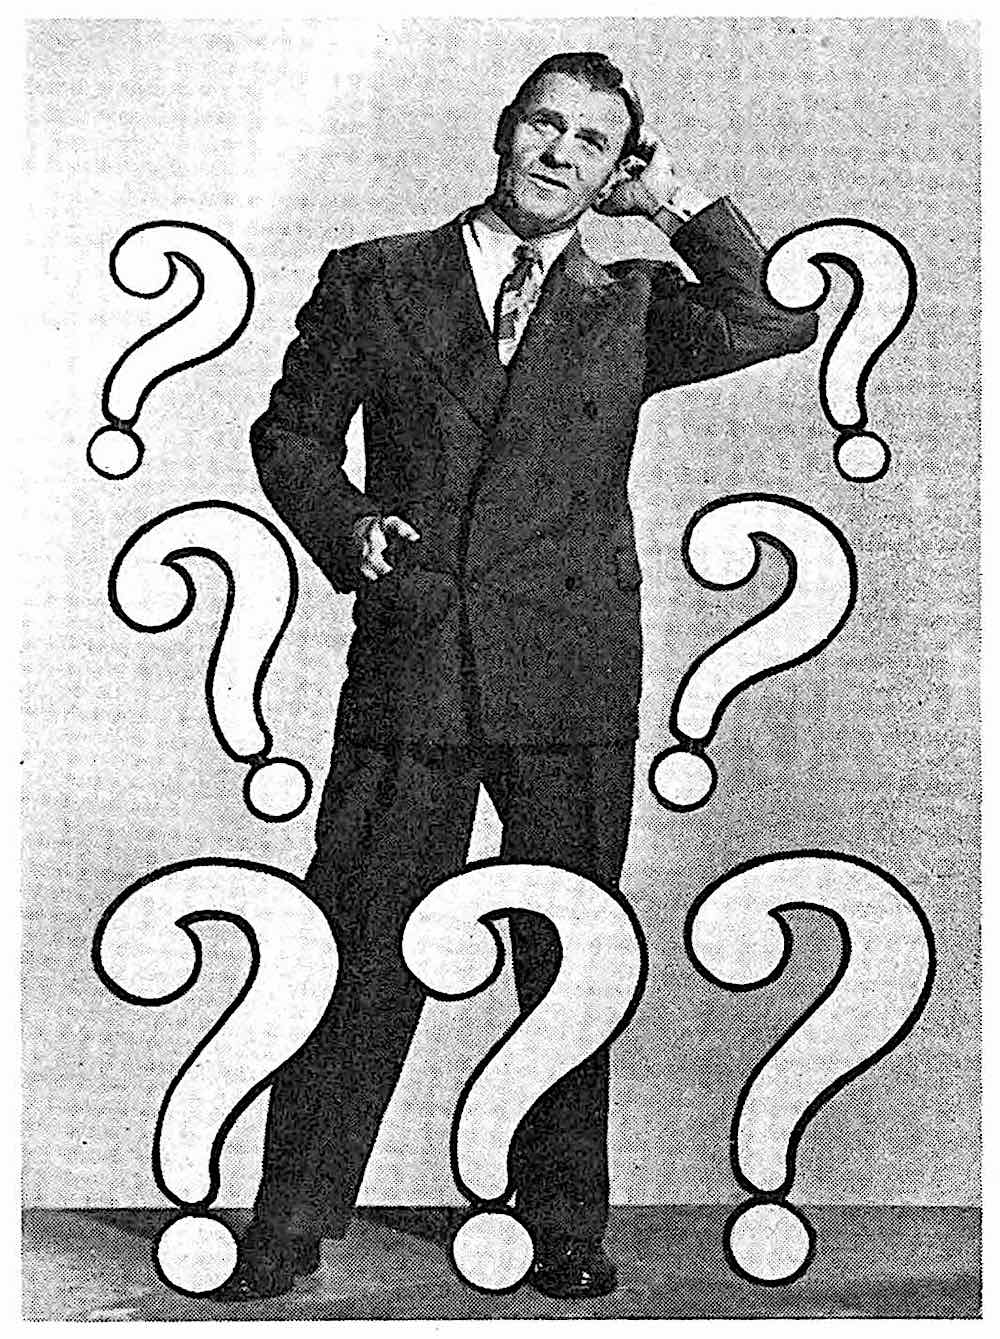 a 1947 thinking man is confused and surrounded by graphic question marks